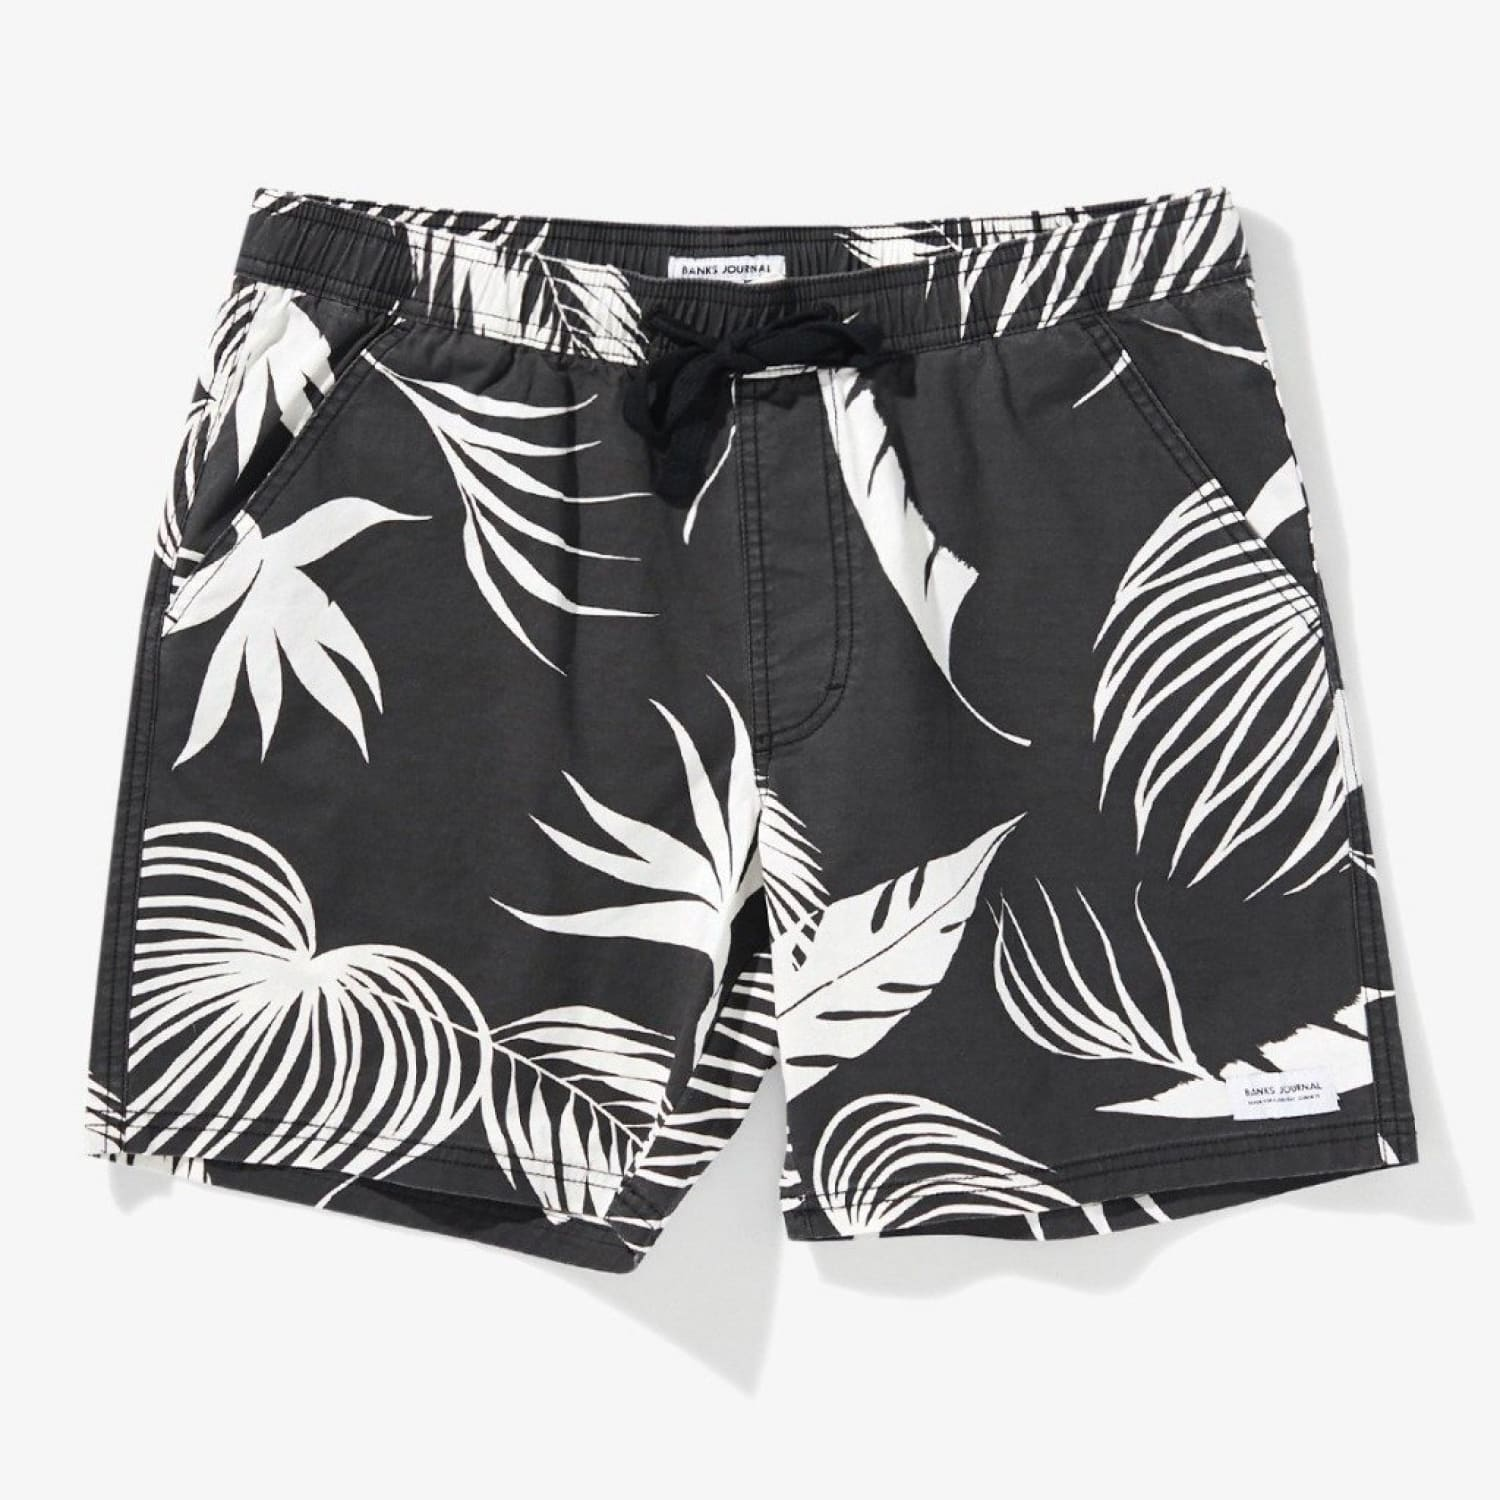 Produce Boardshort Banks Journal, Boardshorts, Leaf, Leafy,